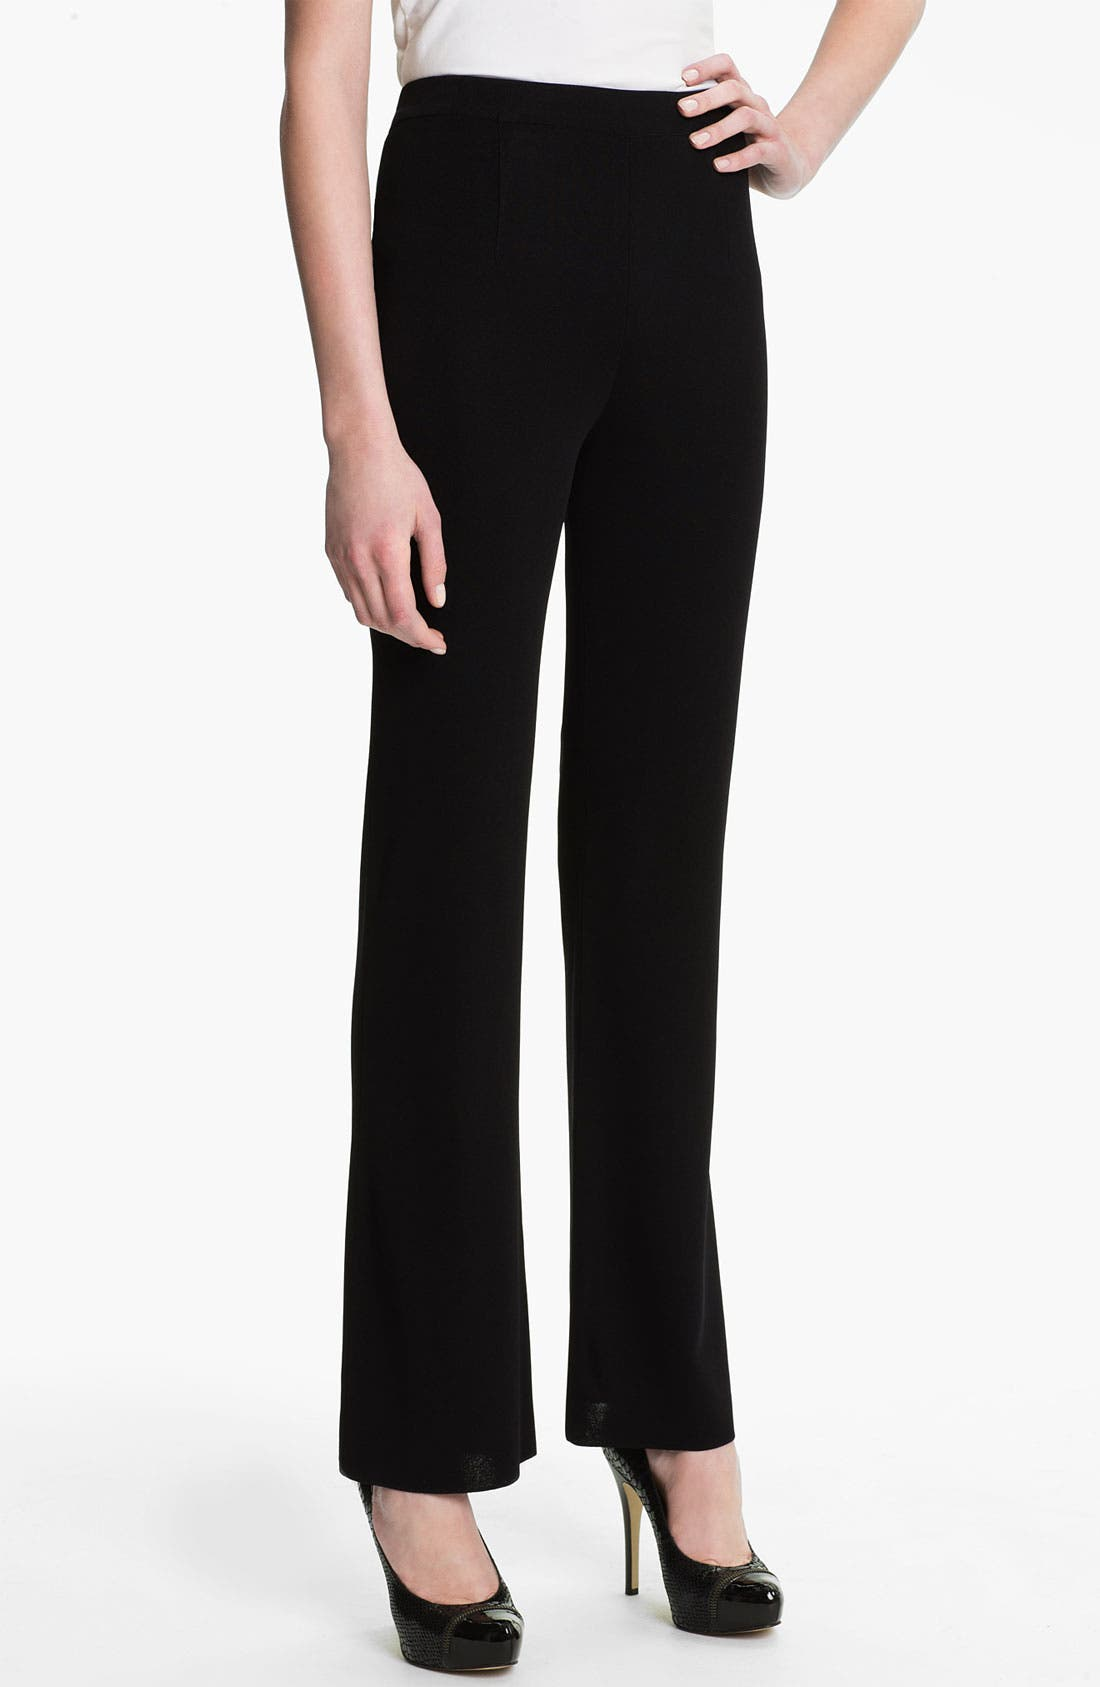 Alternate Image 1 Selected - Misook Bootcut Knit Pants